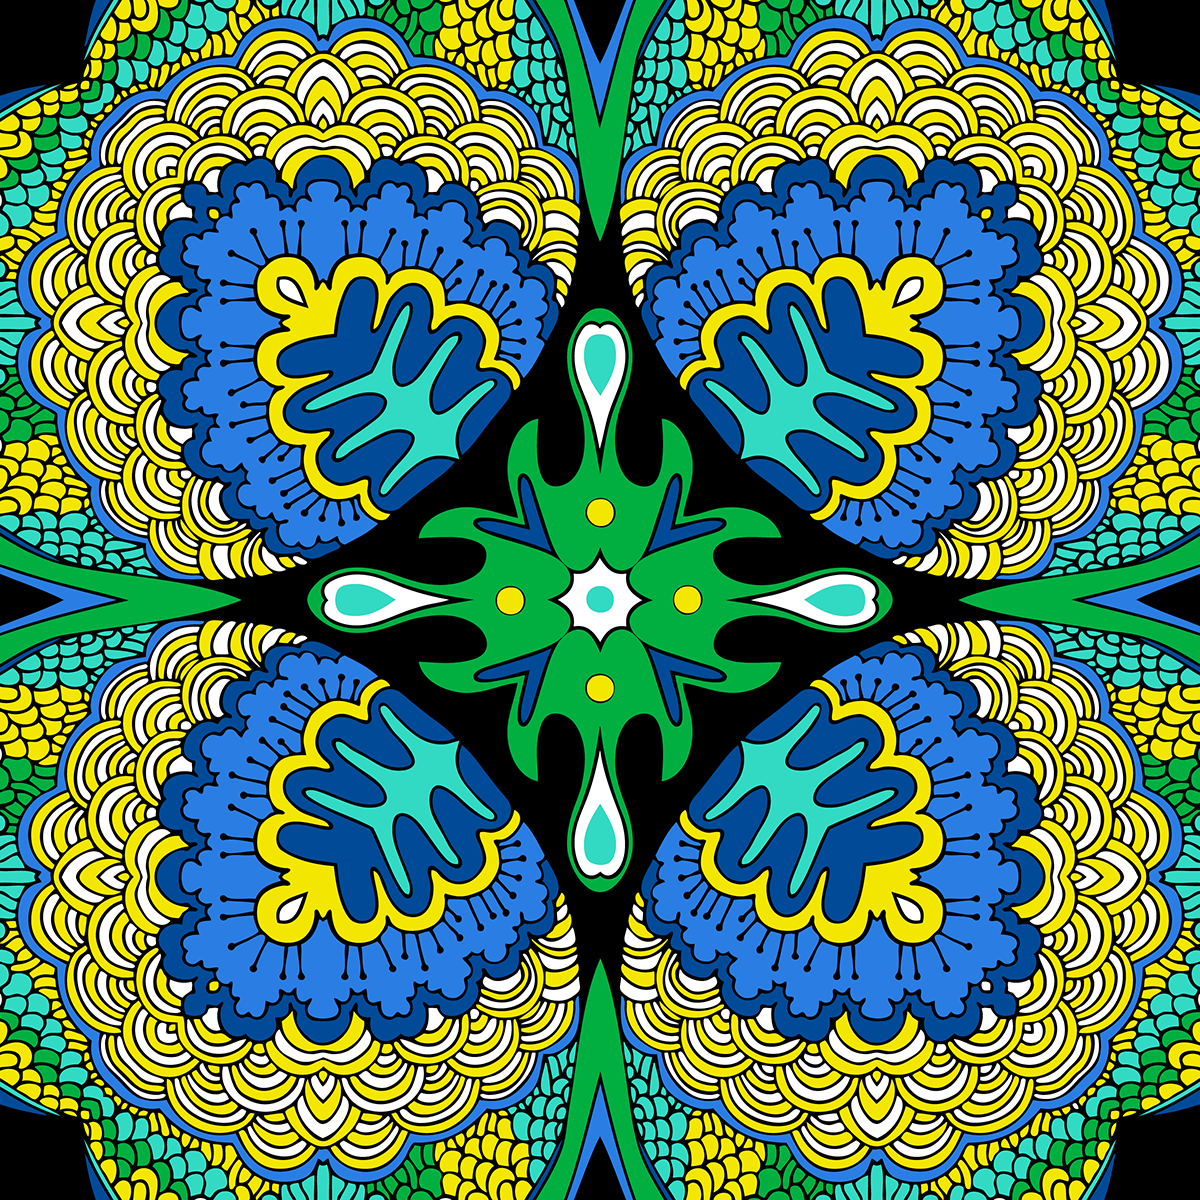 McKnight-NOUVEAU-Pattern-14-2.png